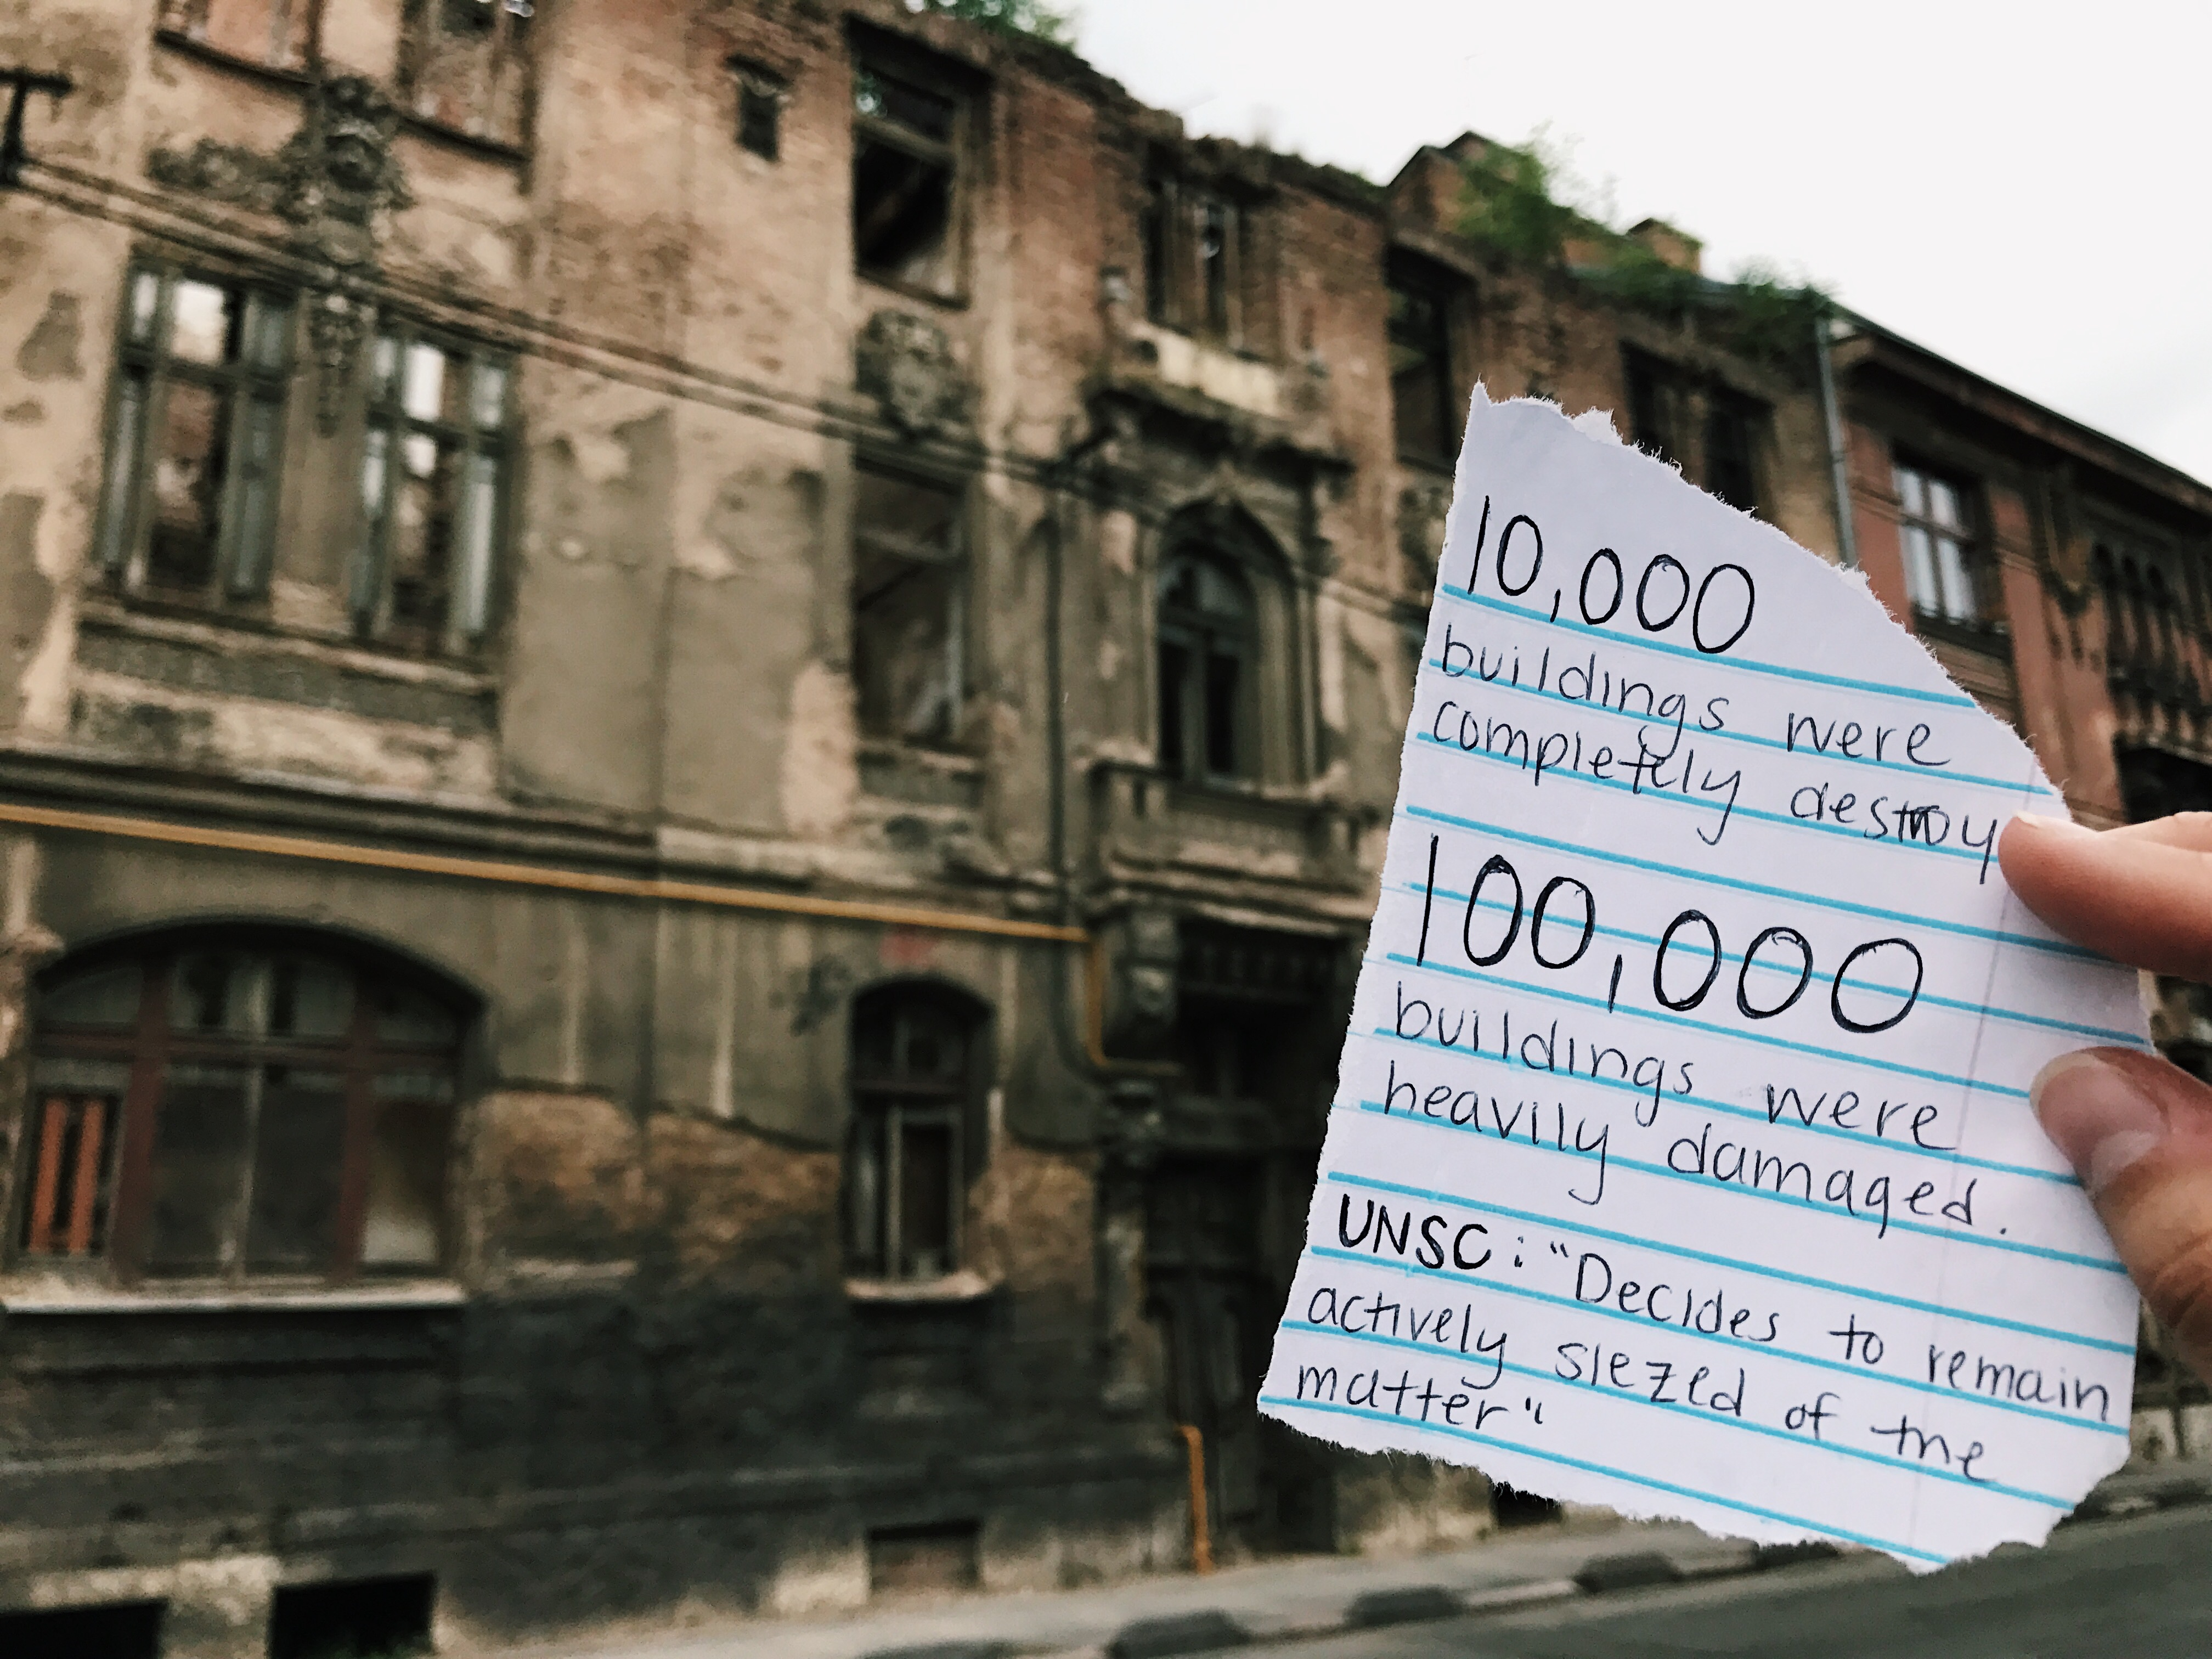 "scrap of paper in front of dilapidated buildings which reads 10,000 buildings were completely destroyed. 100,000 buildings were heavily damaged.  UNSC: ""Decides to remain actively seized of the matter"""